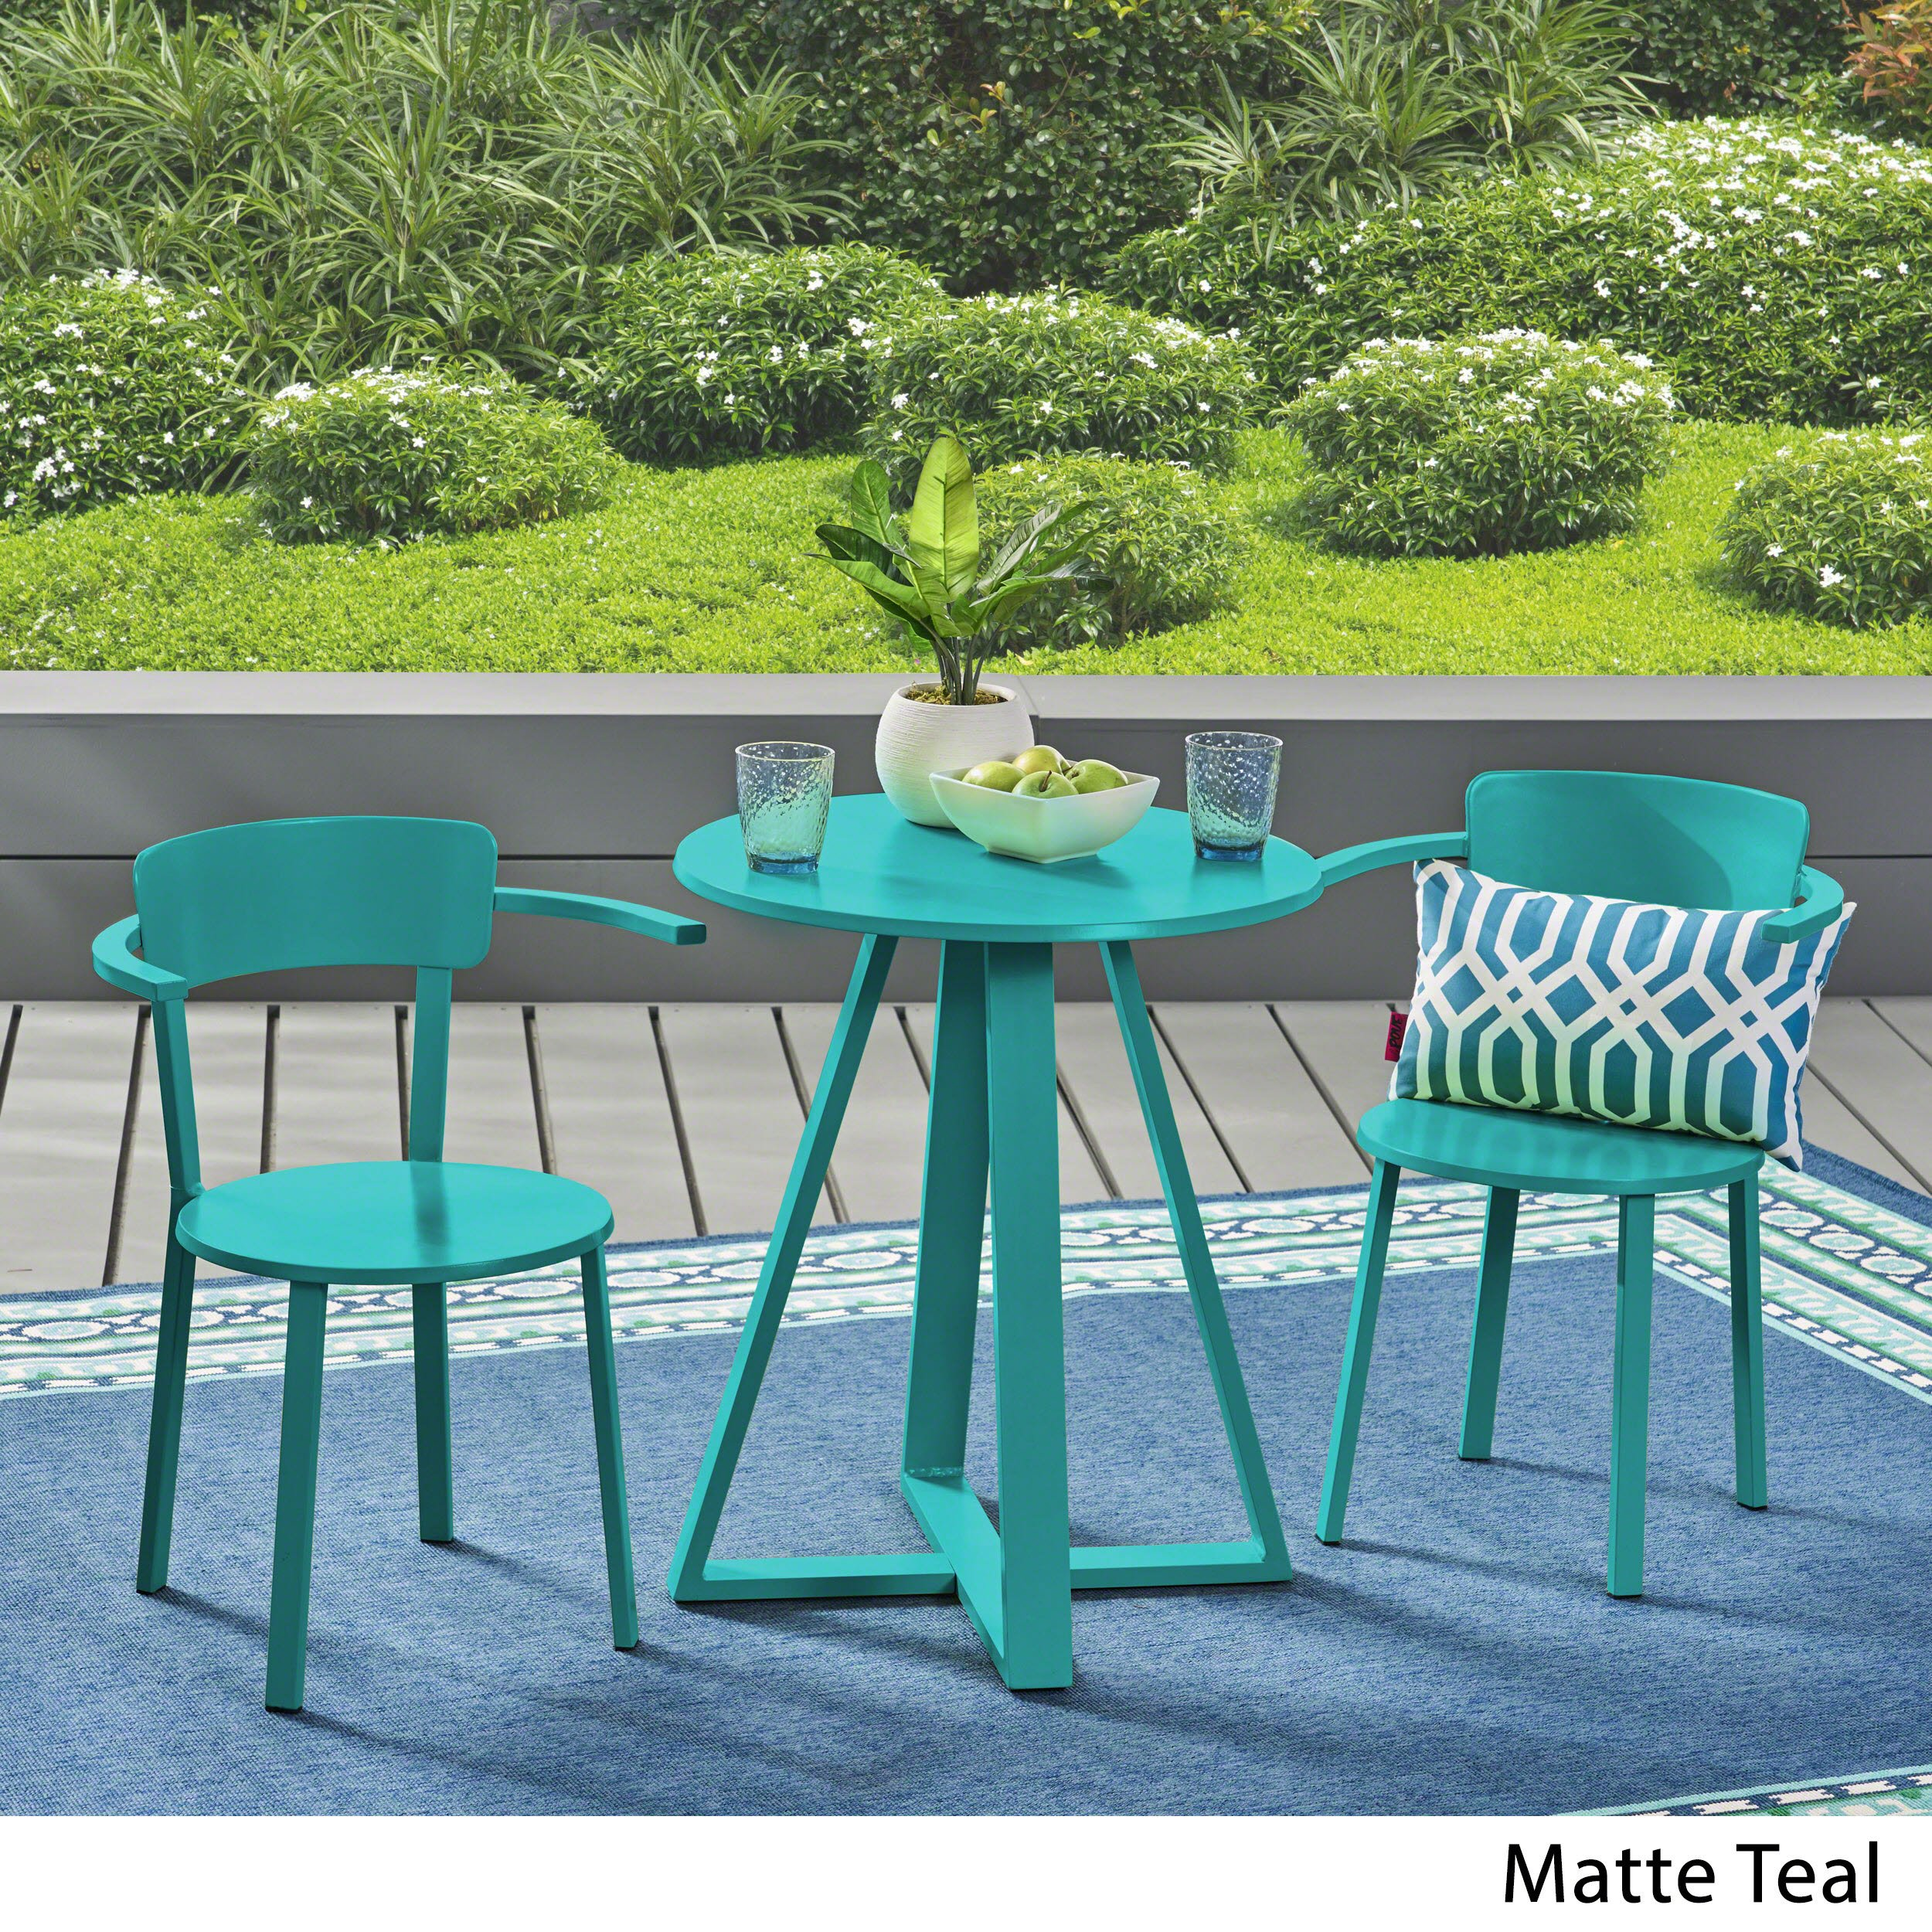 Great Deal Furniture Kate Outdoor Iron Bistro Set, Matte Teal by Great Deal Furniture (Image #2)